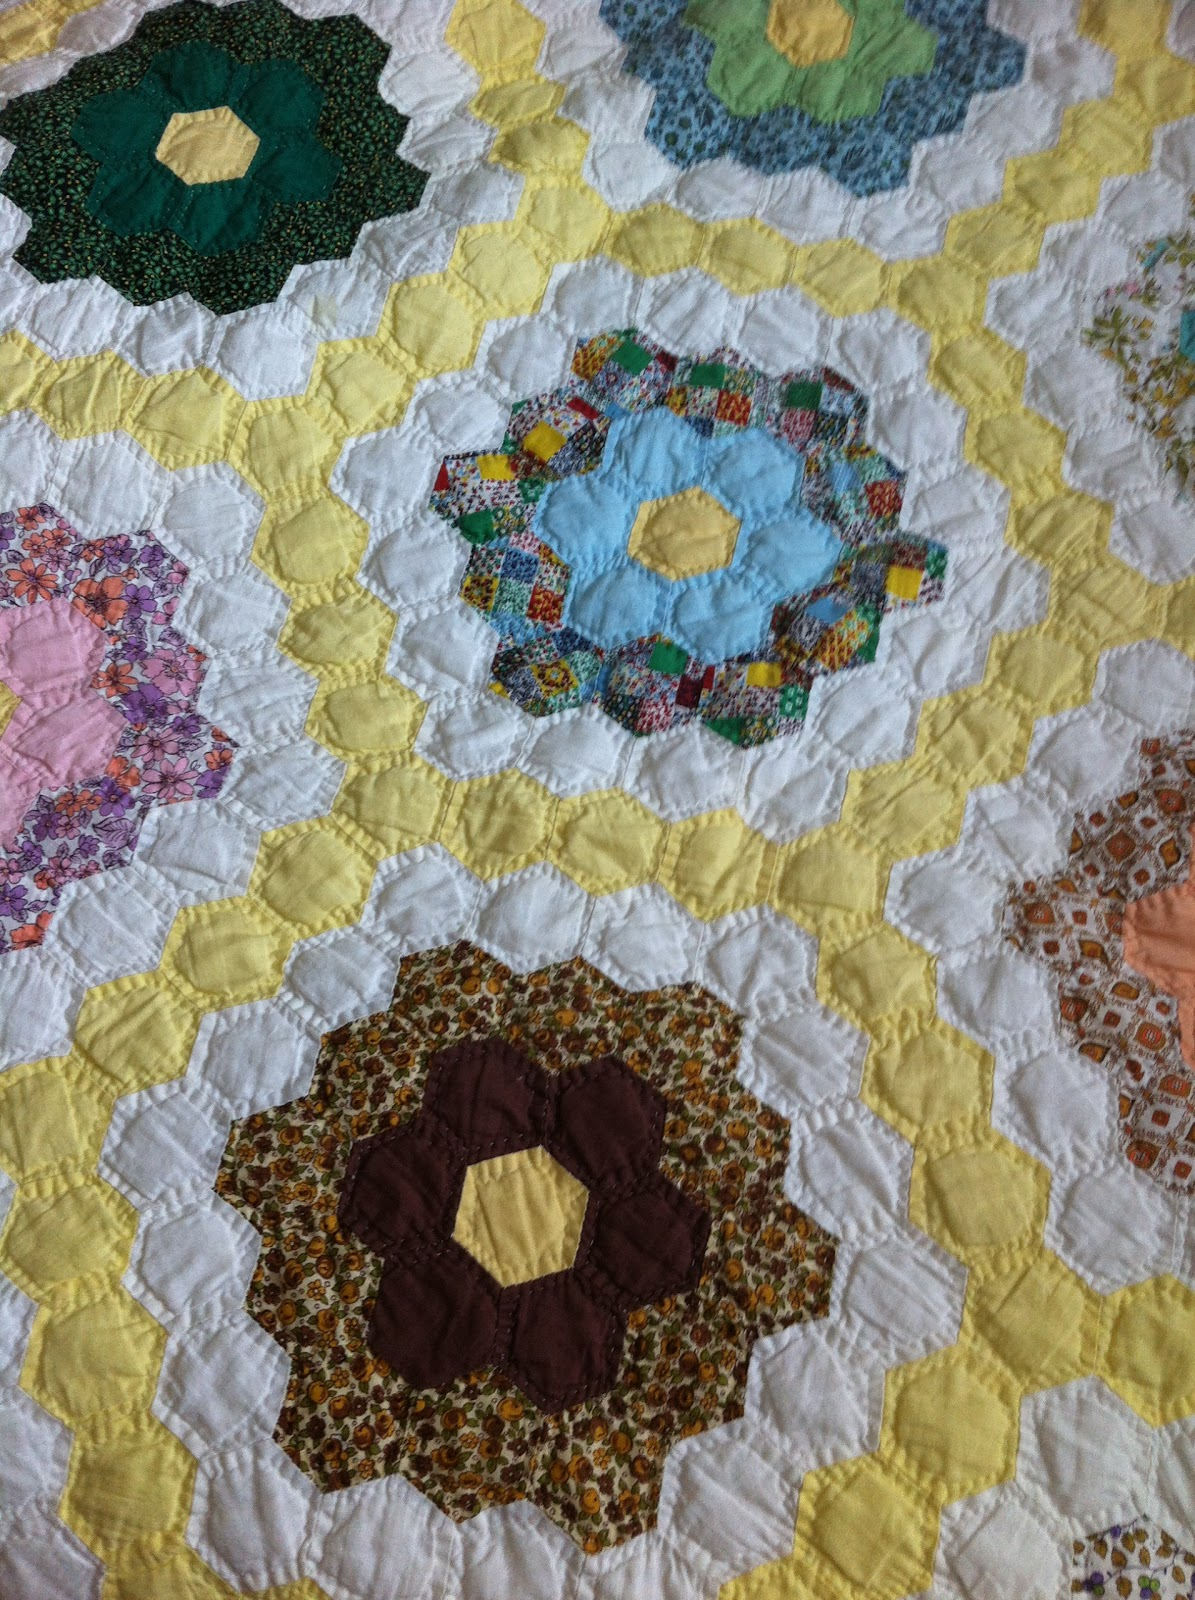 A quilter by night grandmother 39 s flower garden - Grandmother s flower garden quilt ...